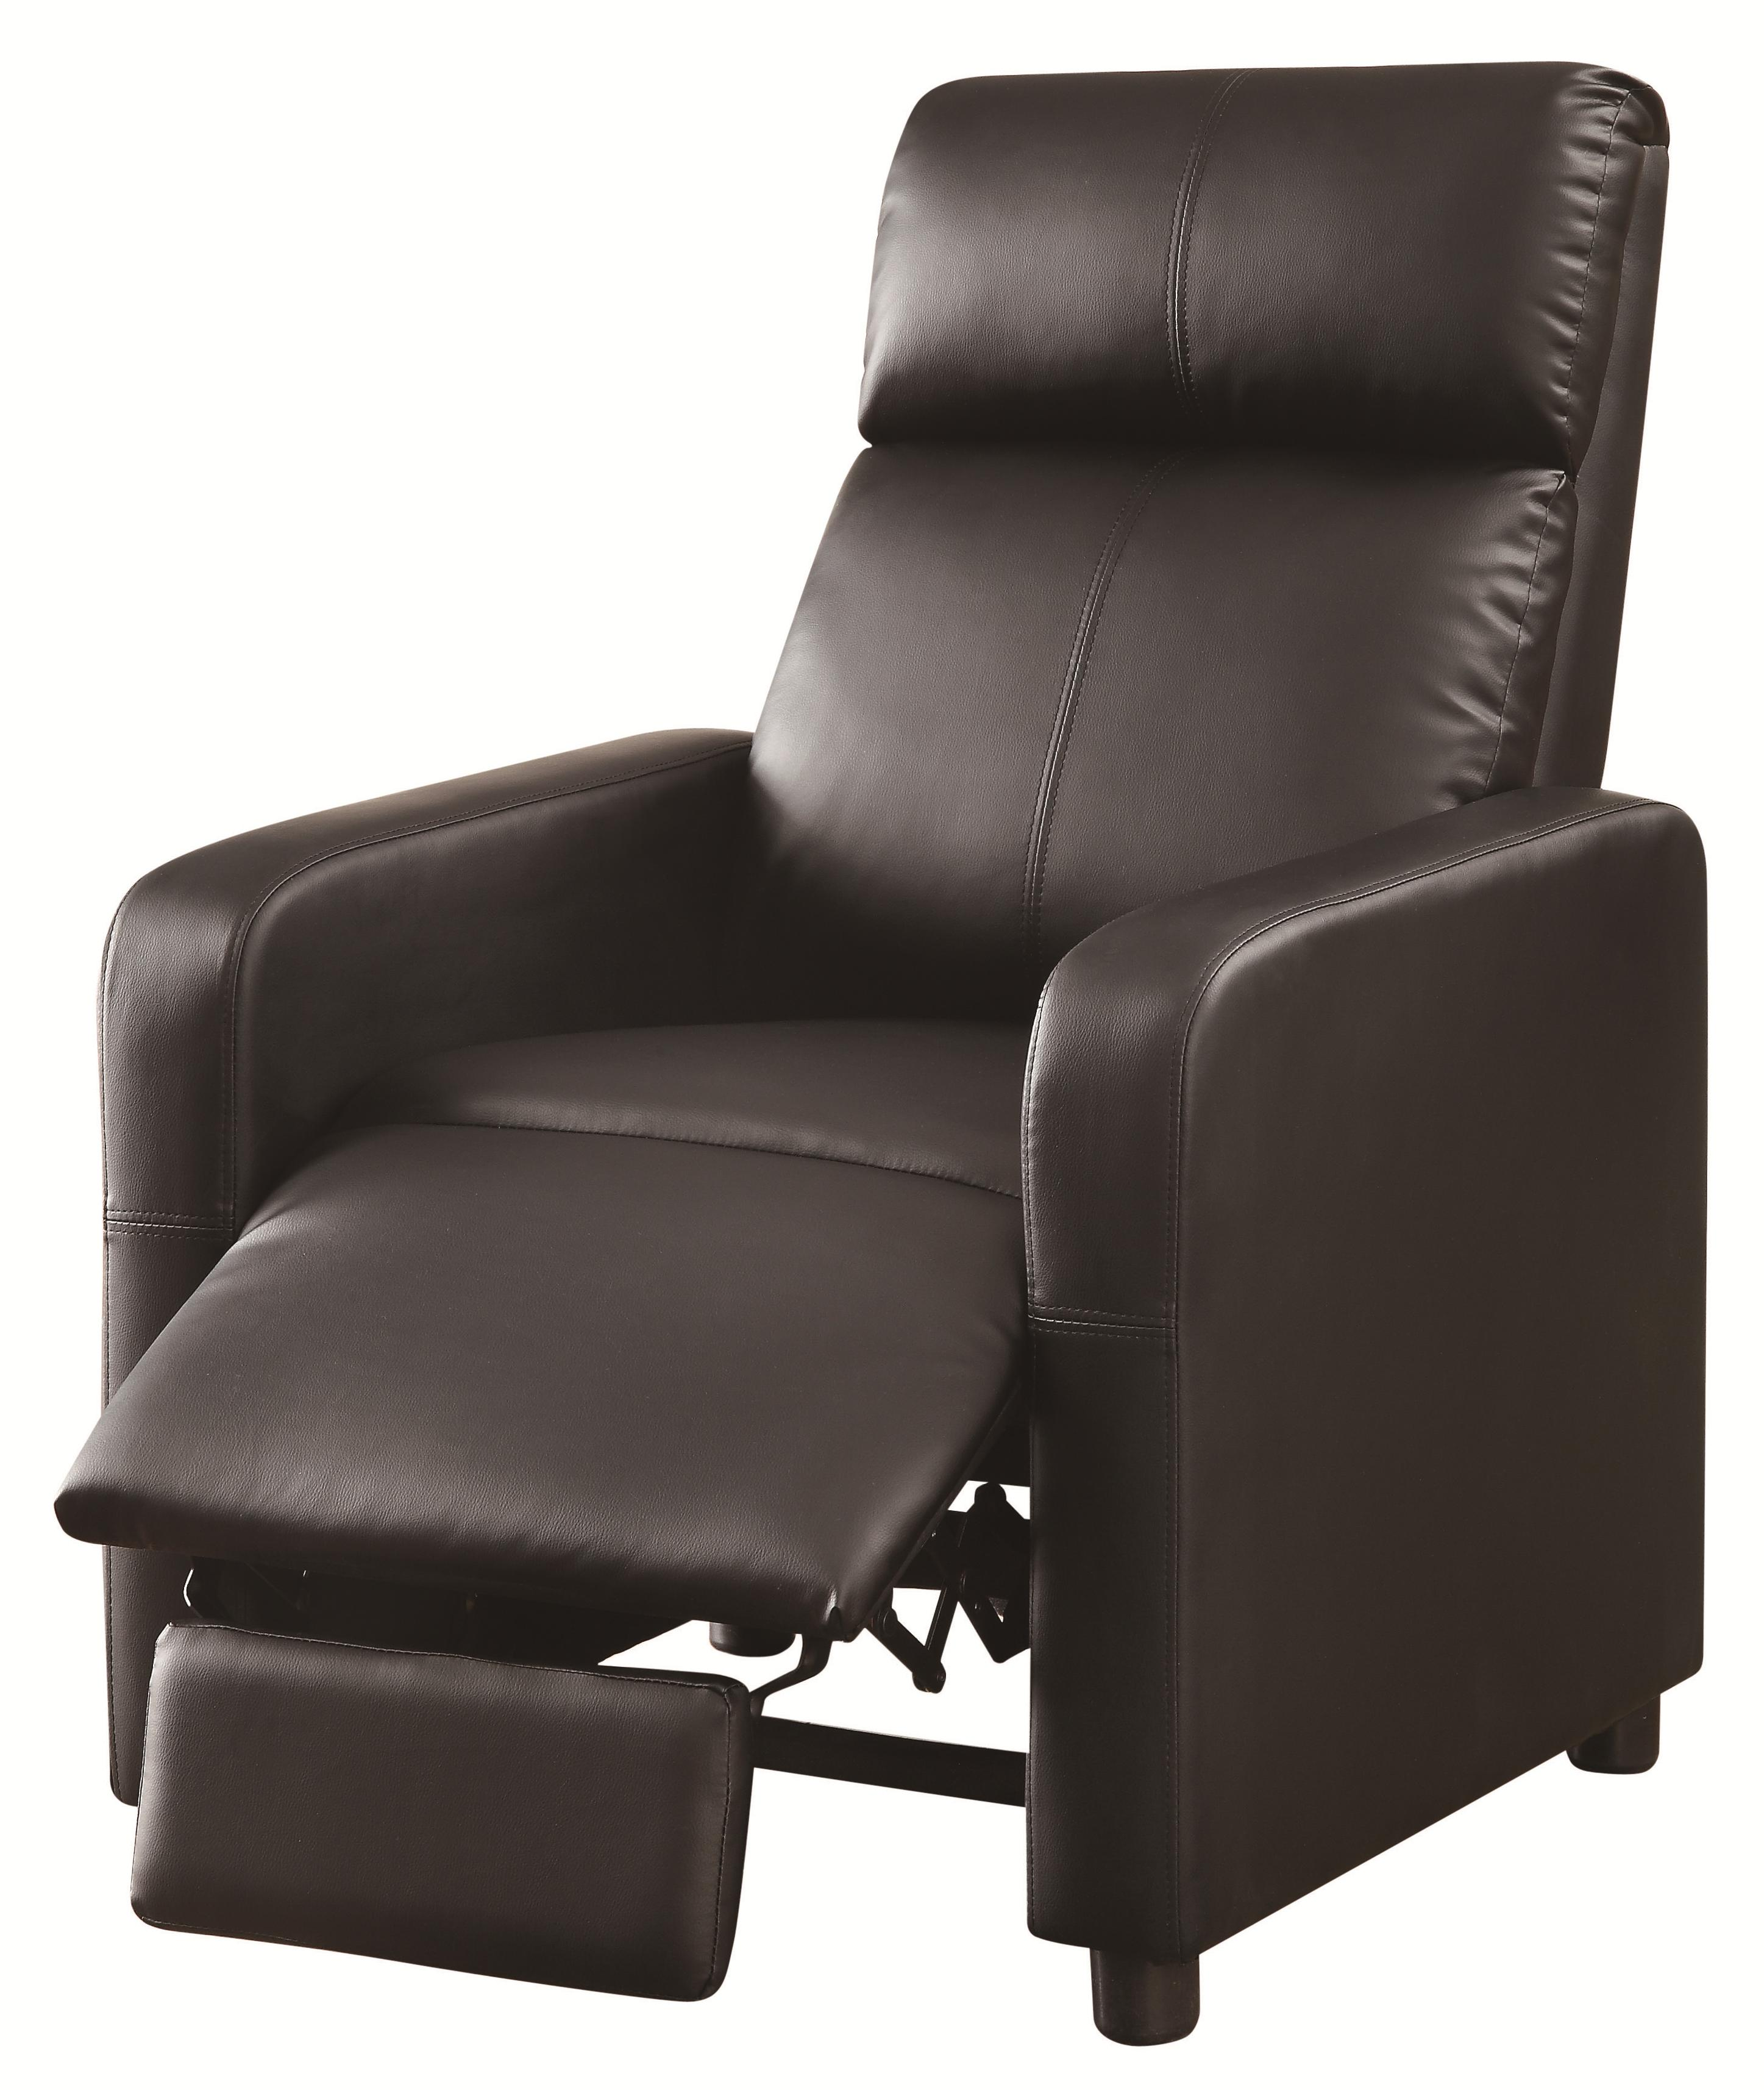 Recliners Push-Back Recliner by Coaster at Value City Furniture